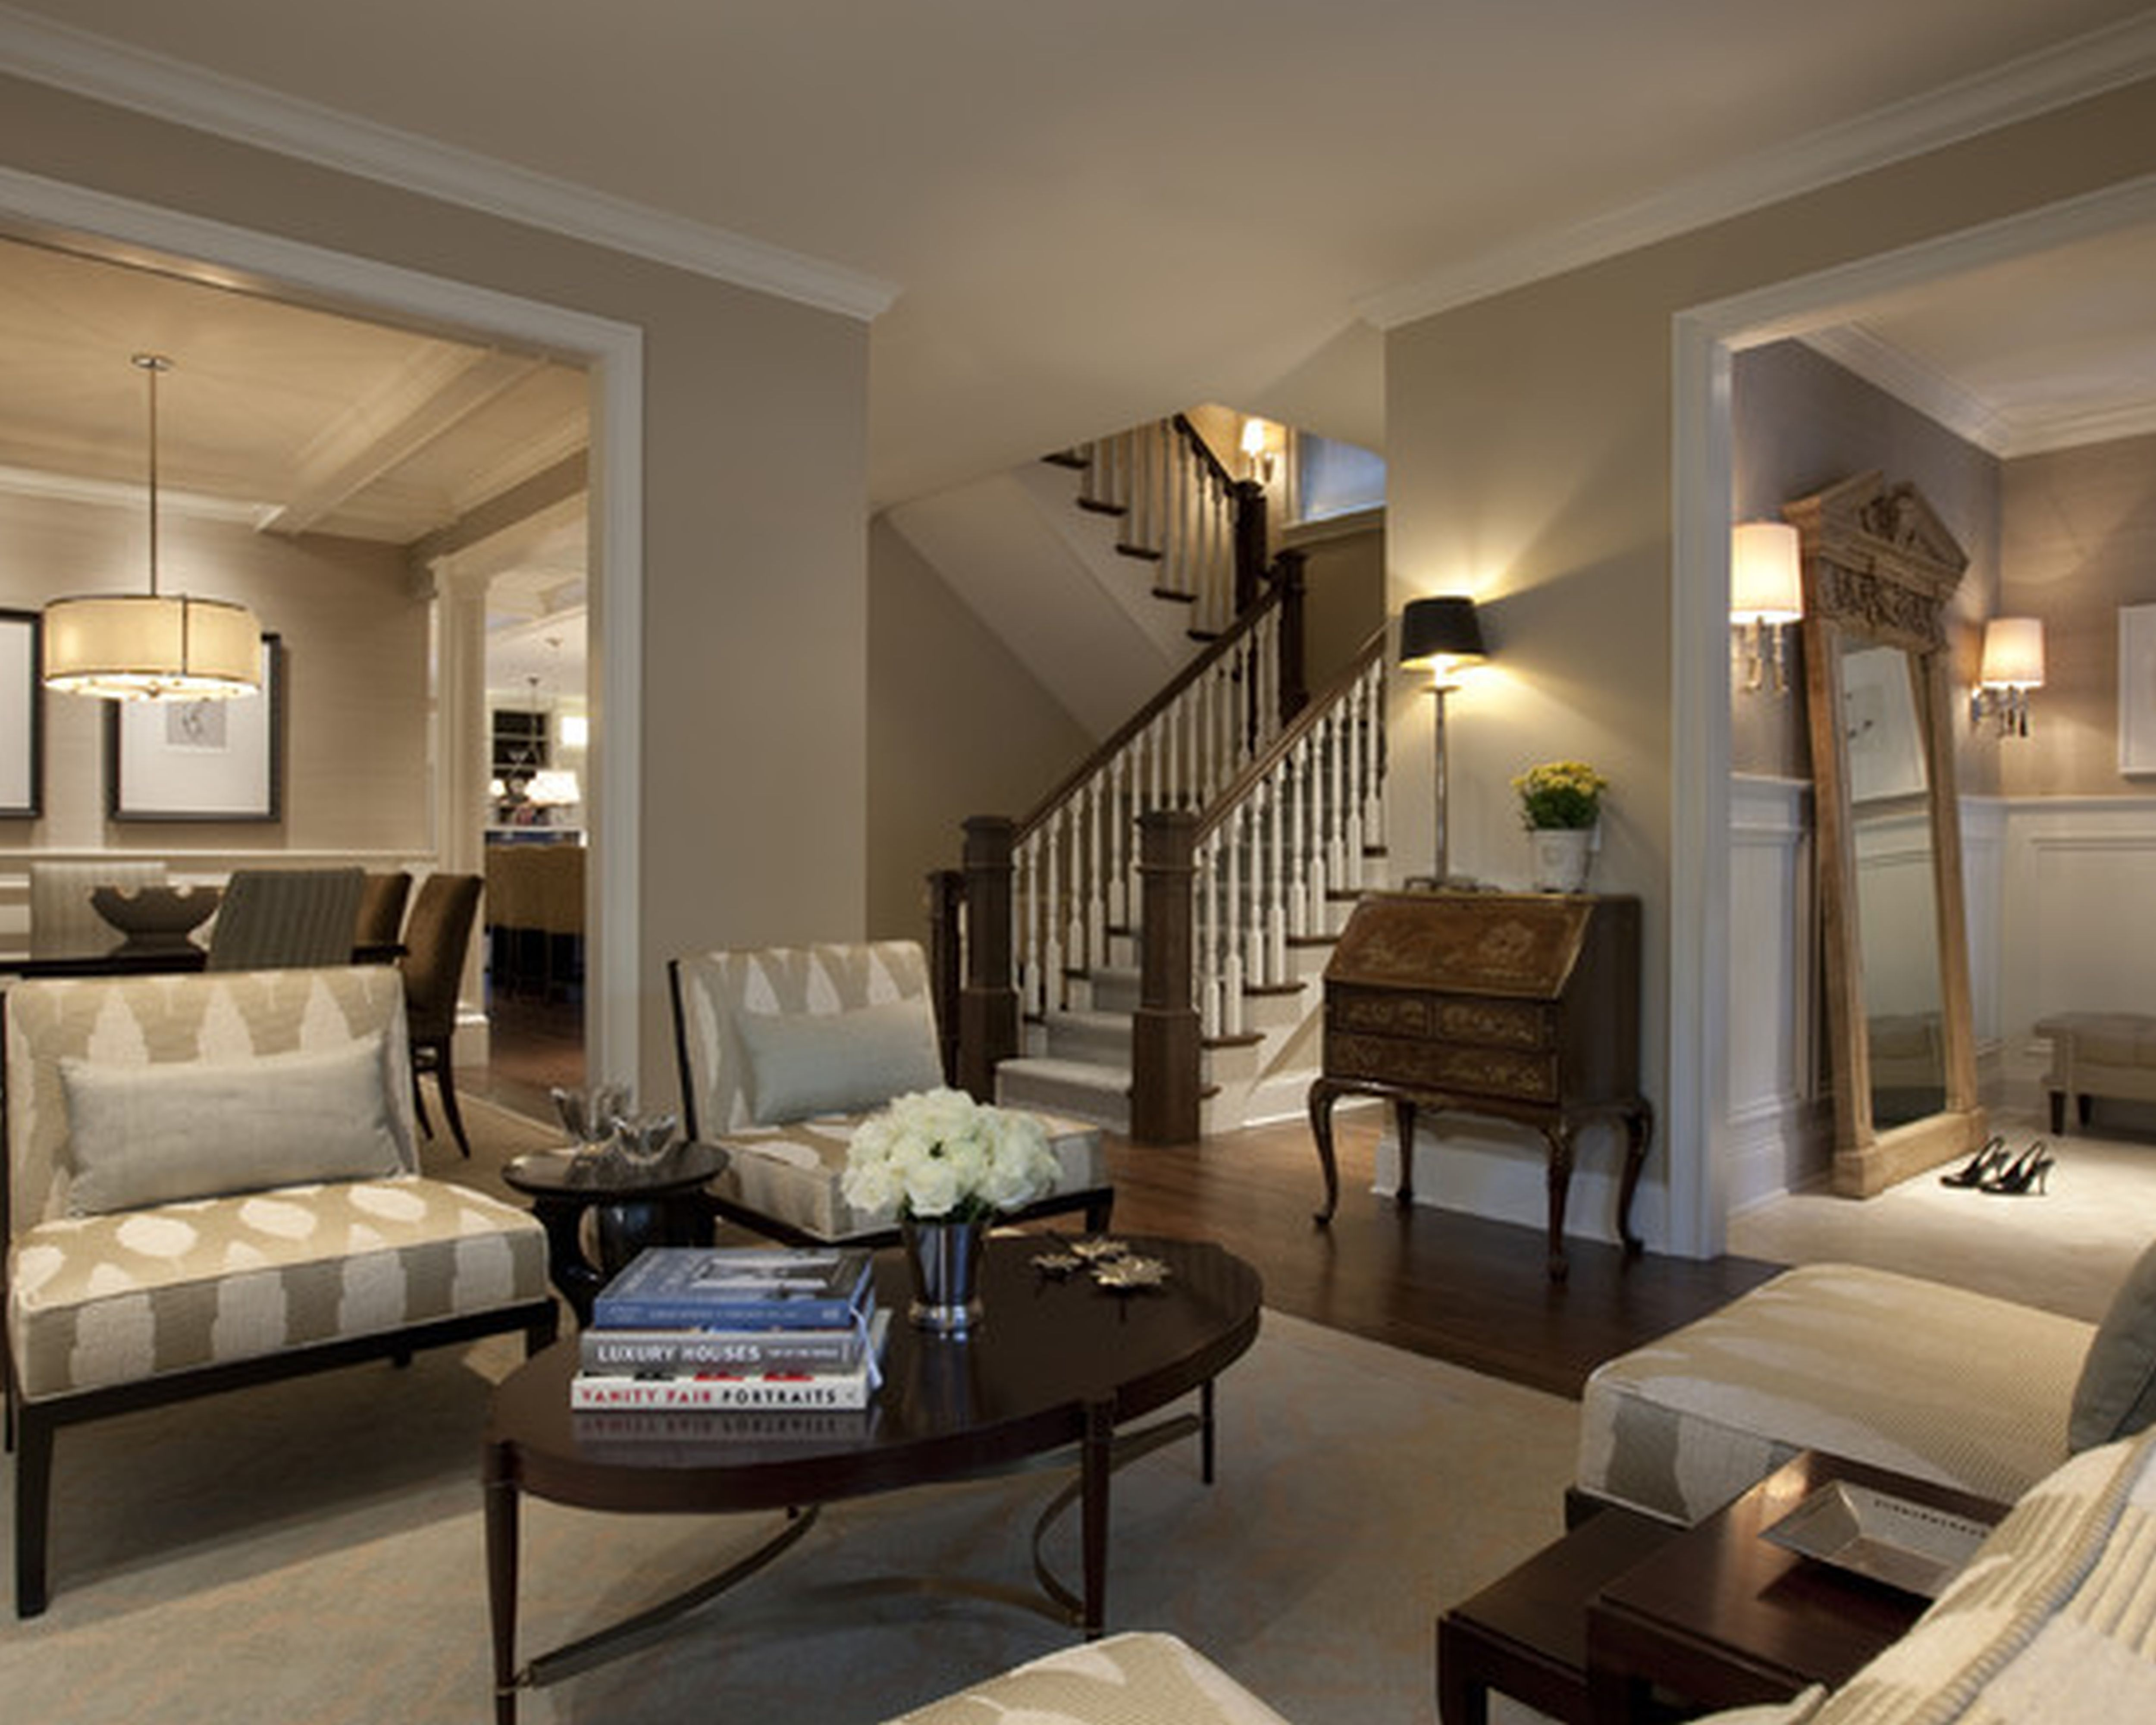 ... Of Pottery Barn Living Room Designs With Contemporary Style Of Design